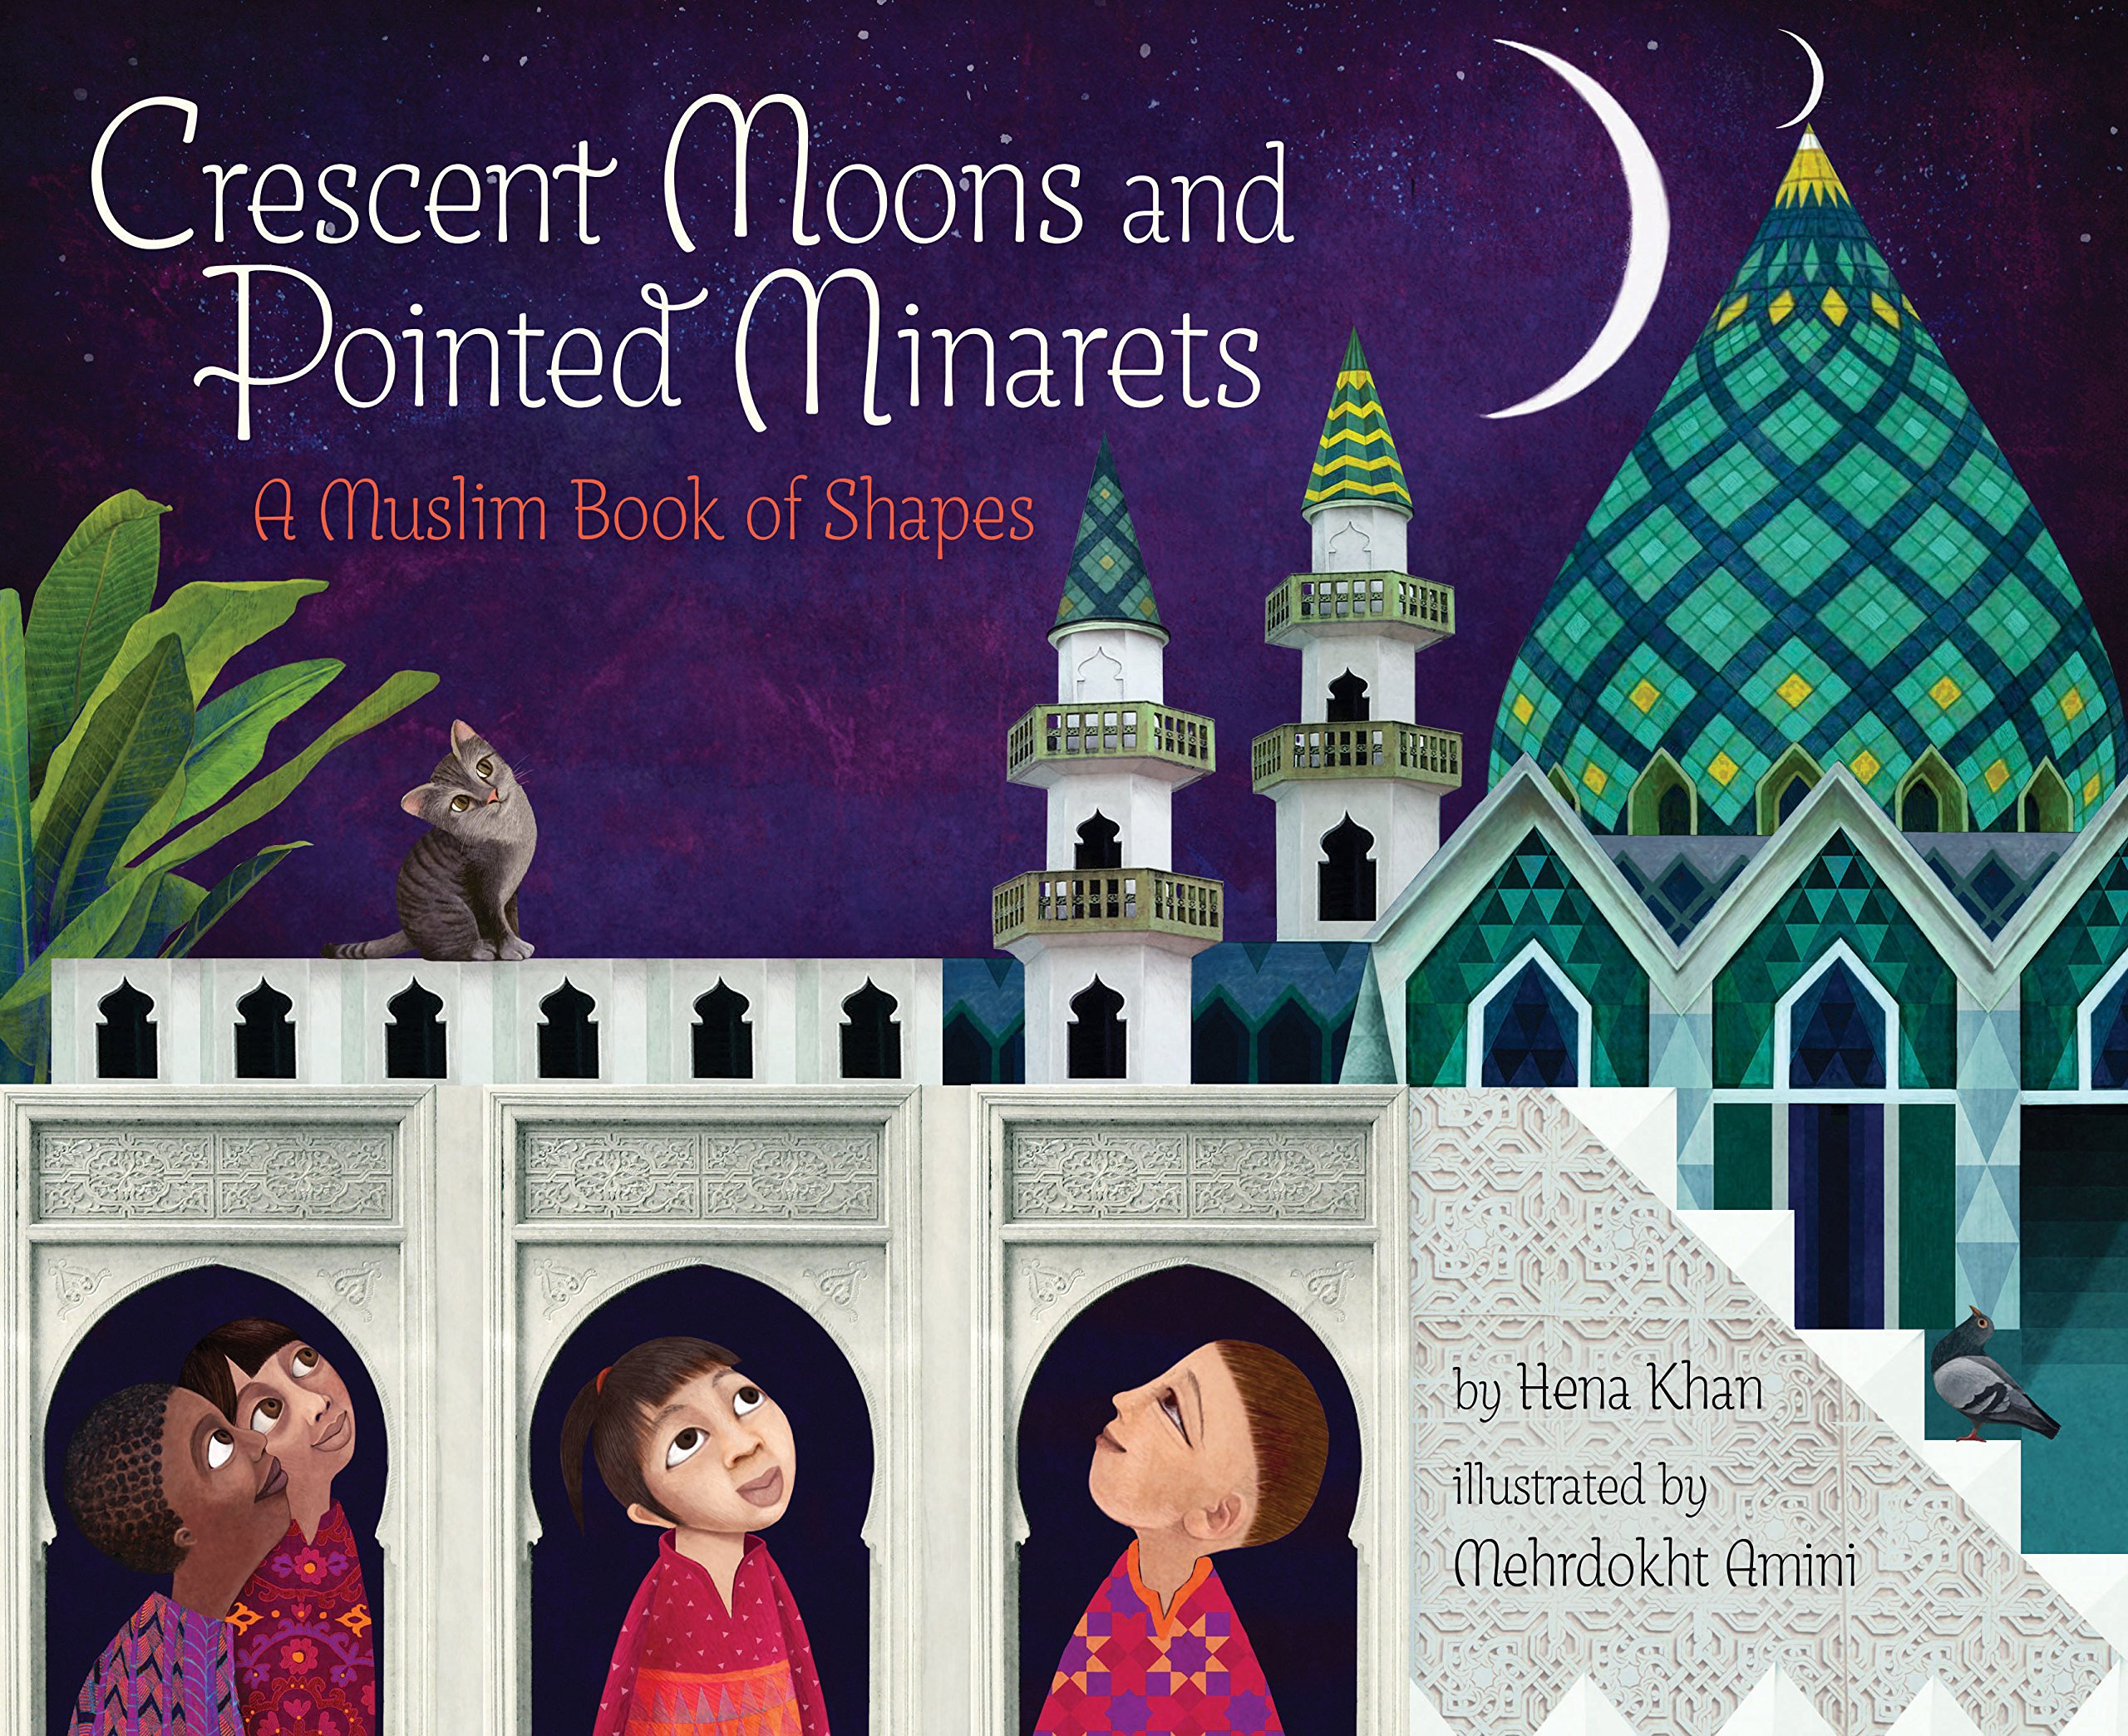 Book cover showing Crescent Moons and Pointed Minarets: A Muslim Book of Shapes